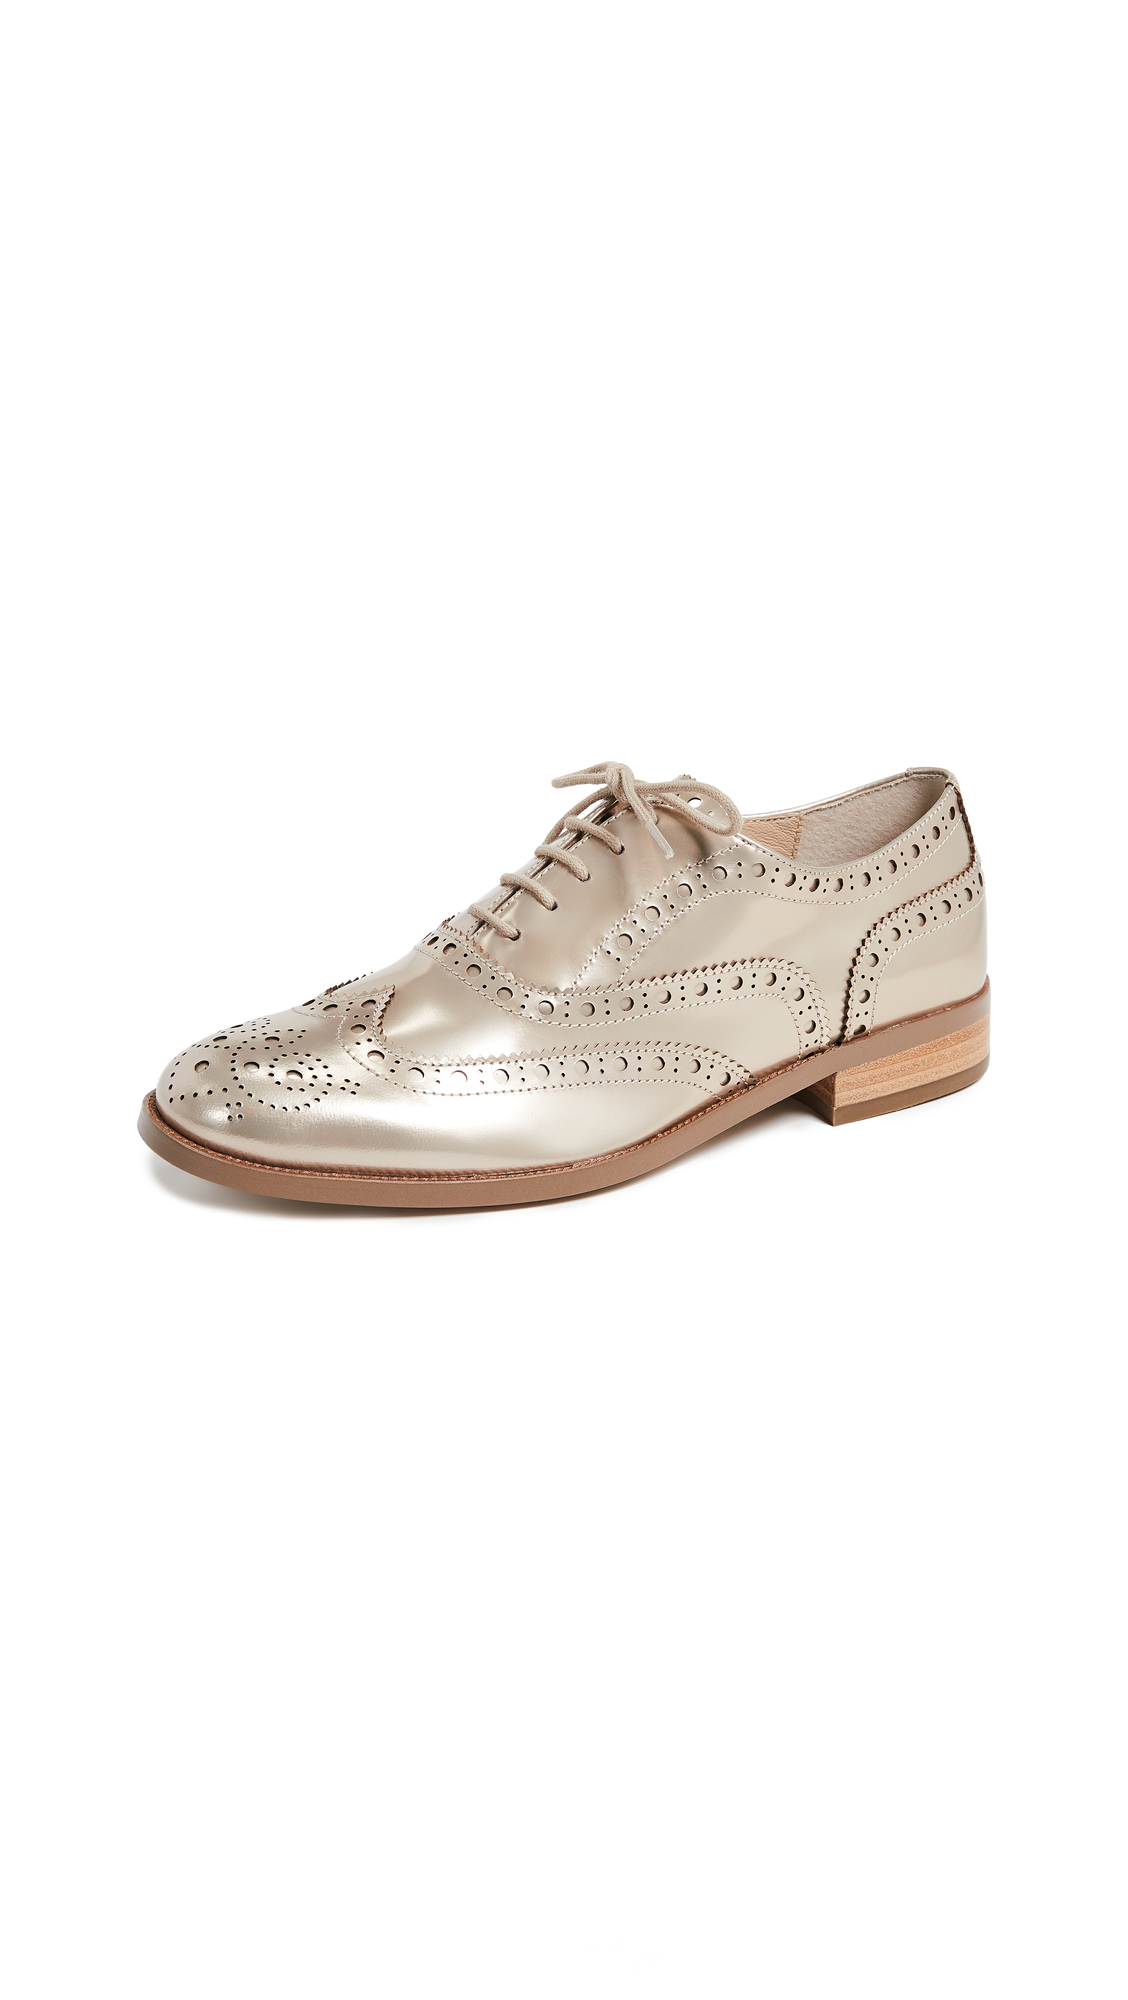 Women'S Callista Metallic Wingtip Oxford Loafers in Gold